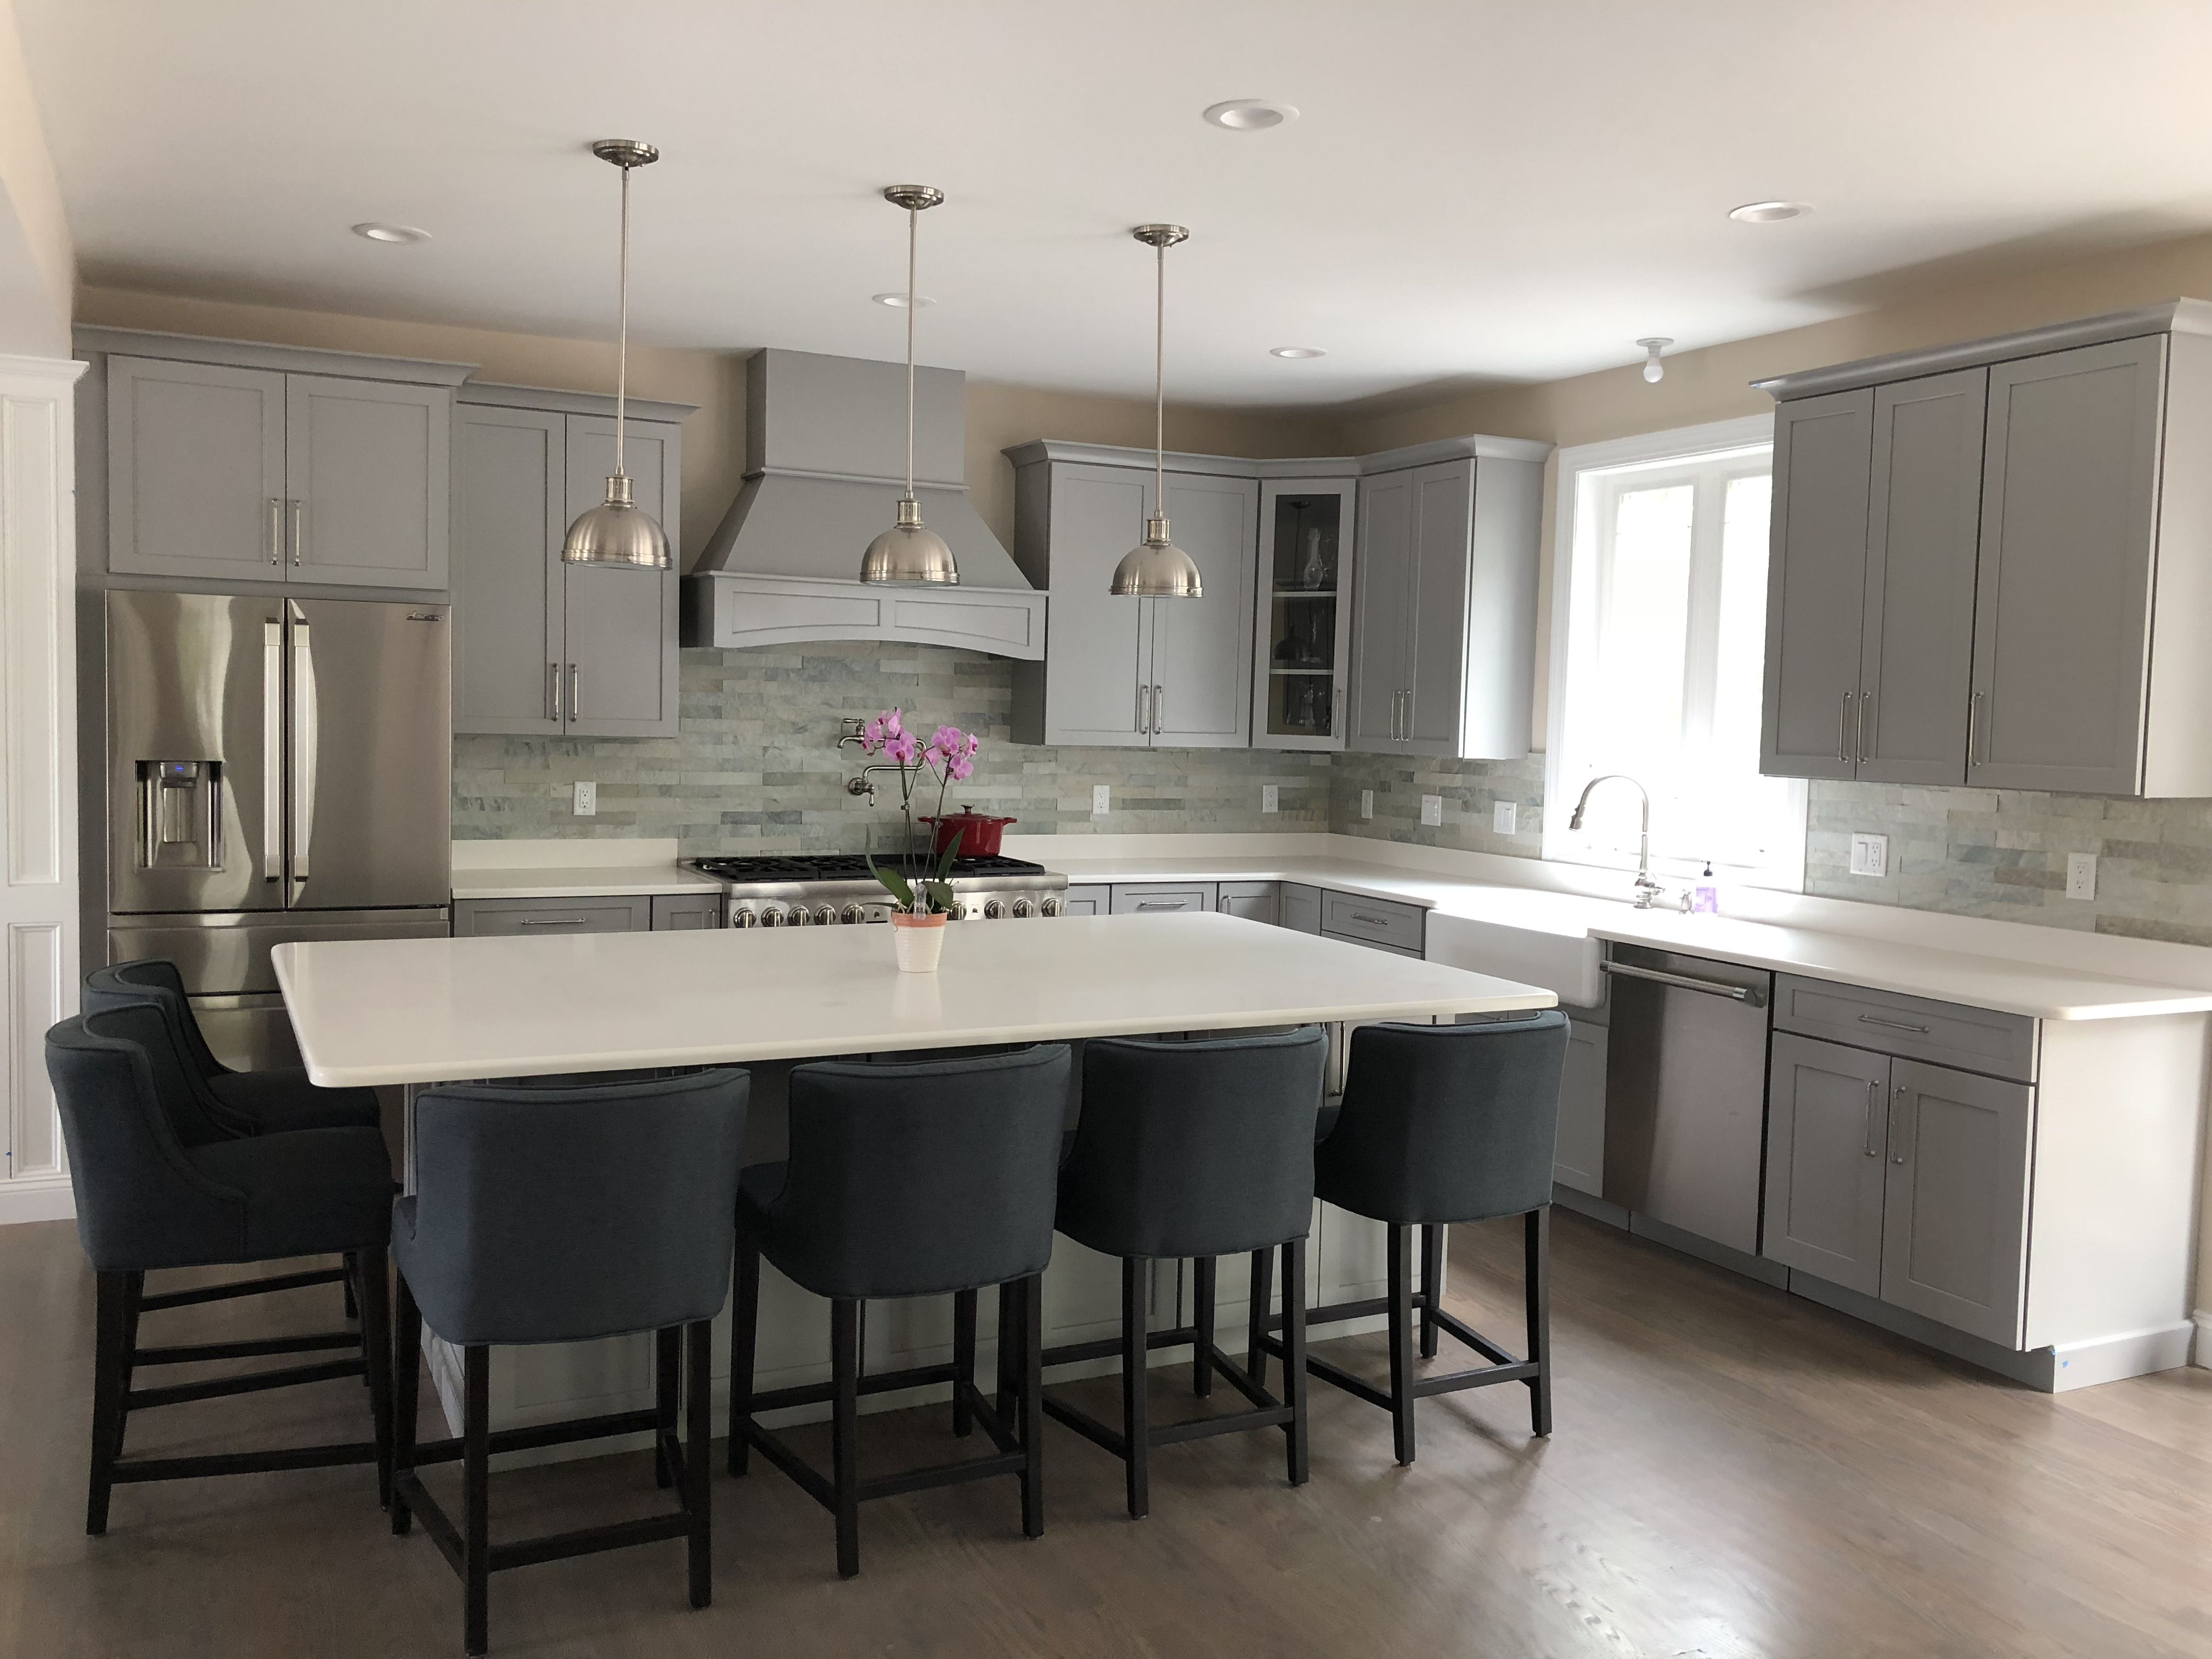 Gray Kitchen Cabinets With White Quartz Island And Countertops